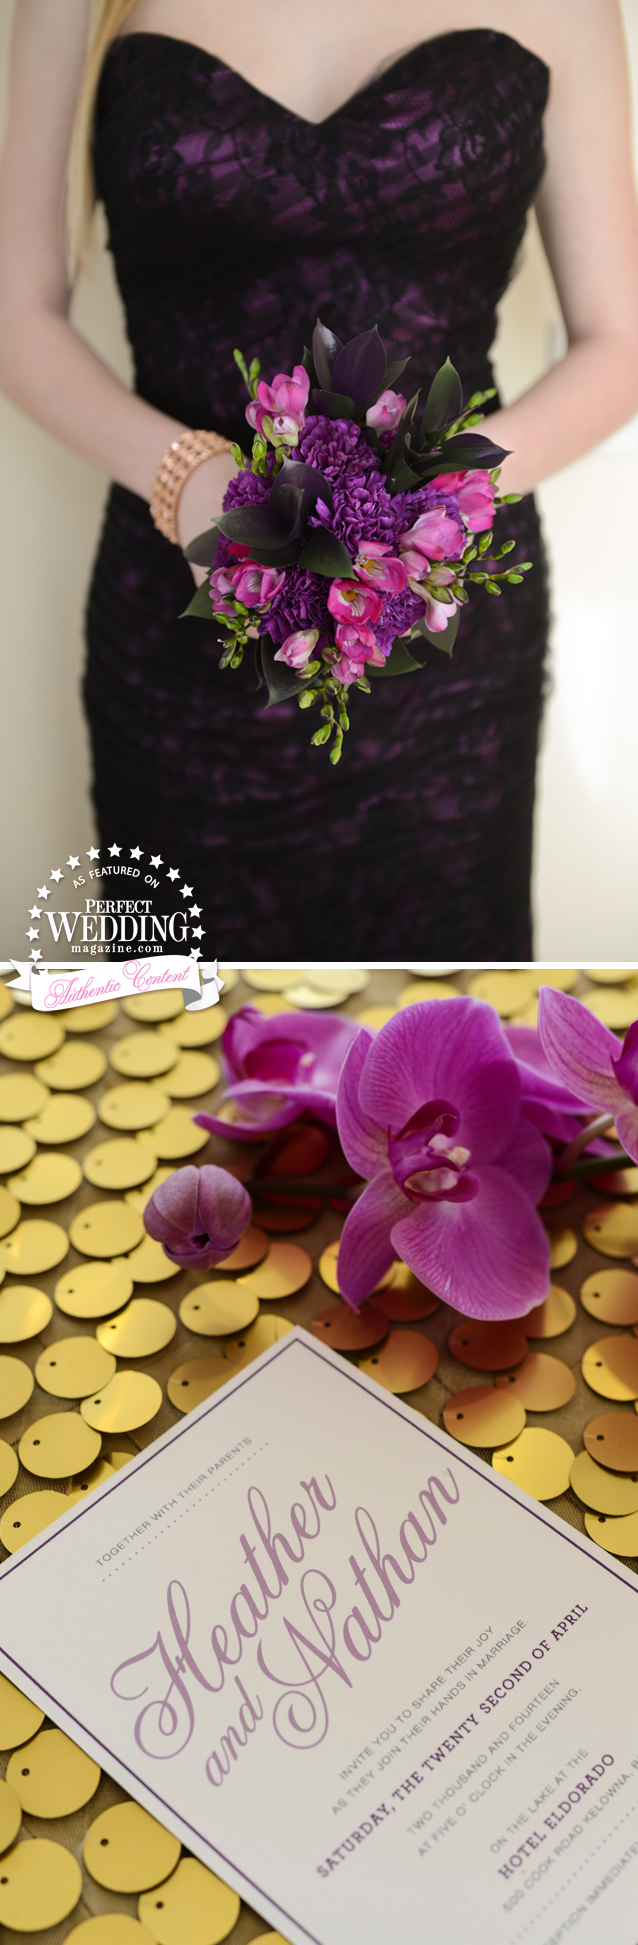 ORCHID VELVET STYLE SHOOT, Perfect Wedding Magazine, Radiant Orchid, Wedding Decor, Wedding Flowers, orchids Weddings, Suzanne Le Stage, Wedding Cakes, El Dorado, Okanagan Weddings ,